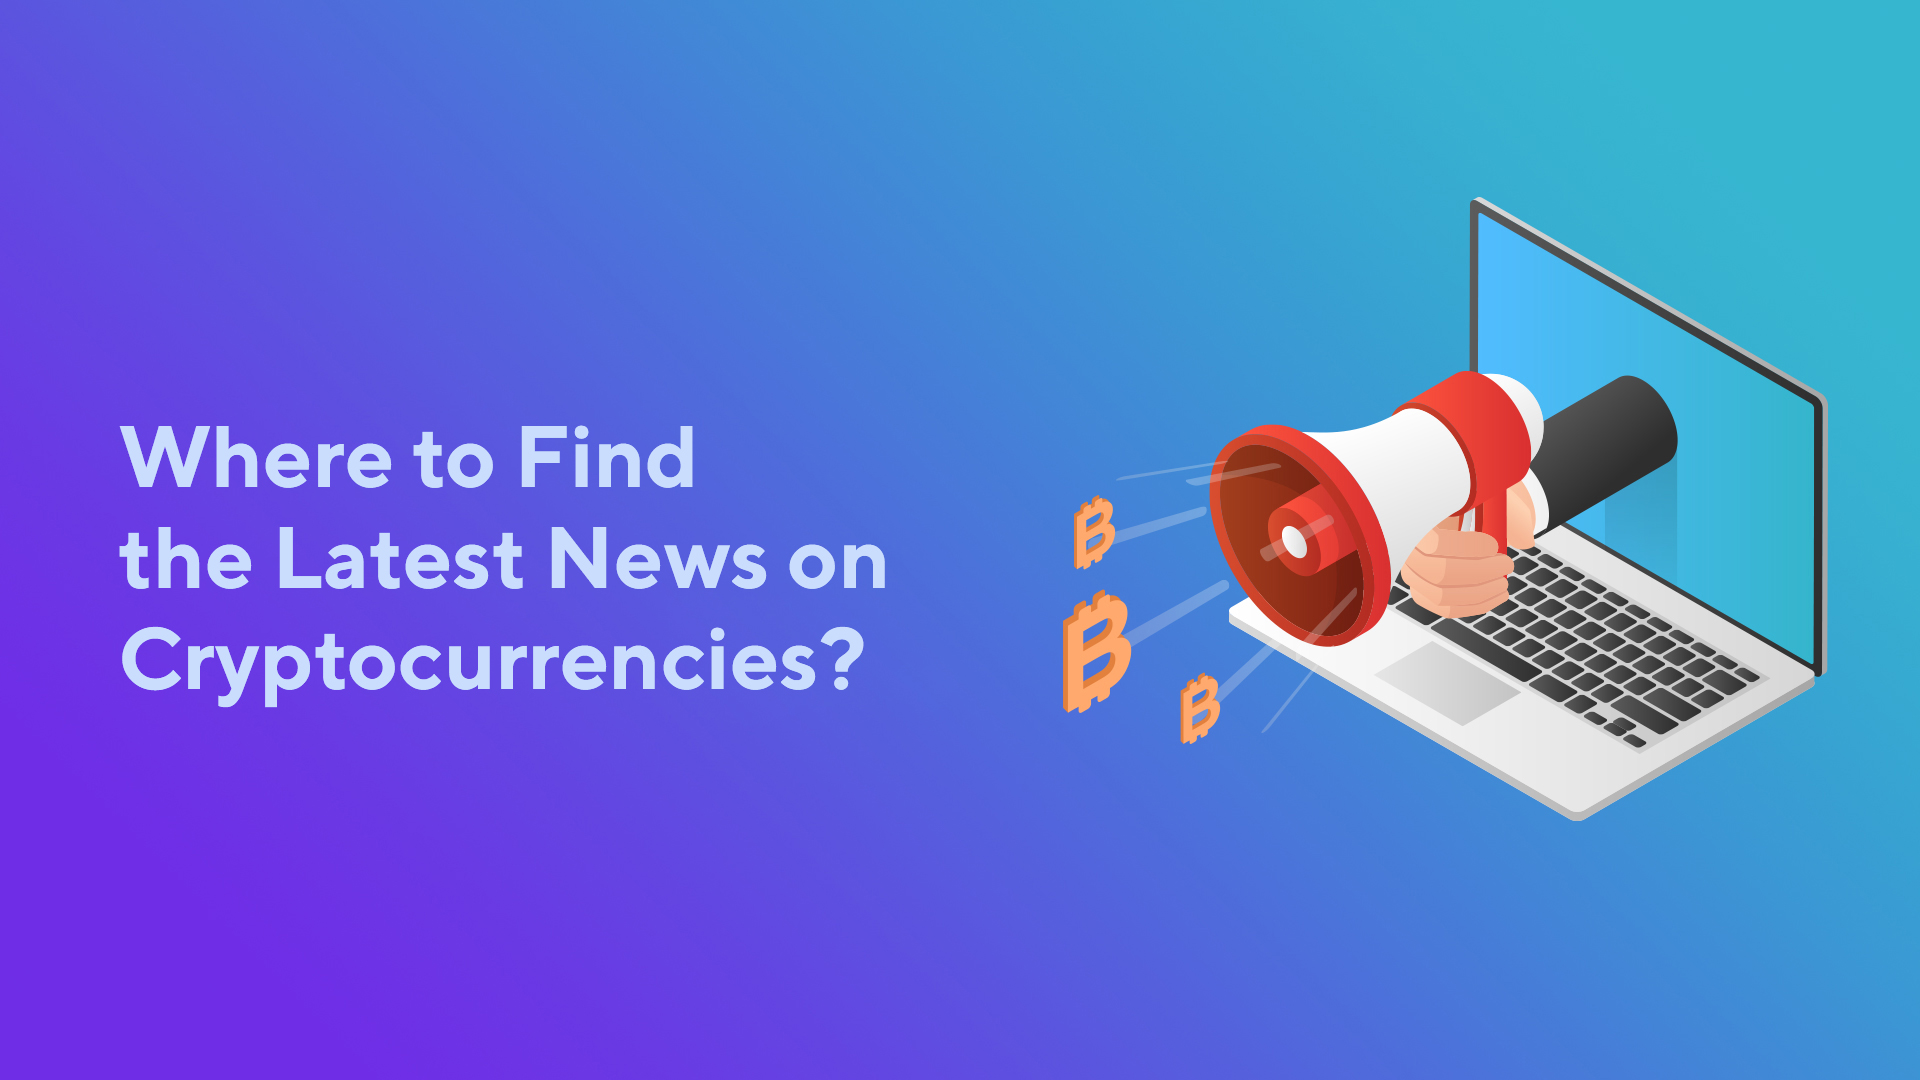 Where to Find News on Cryptoсurrencies?